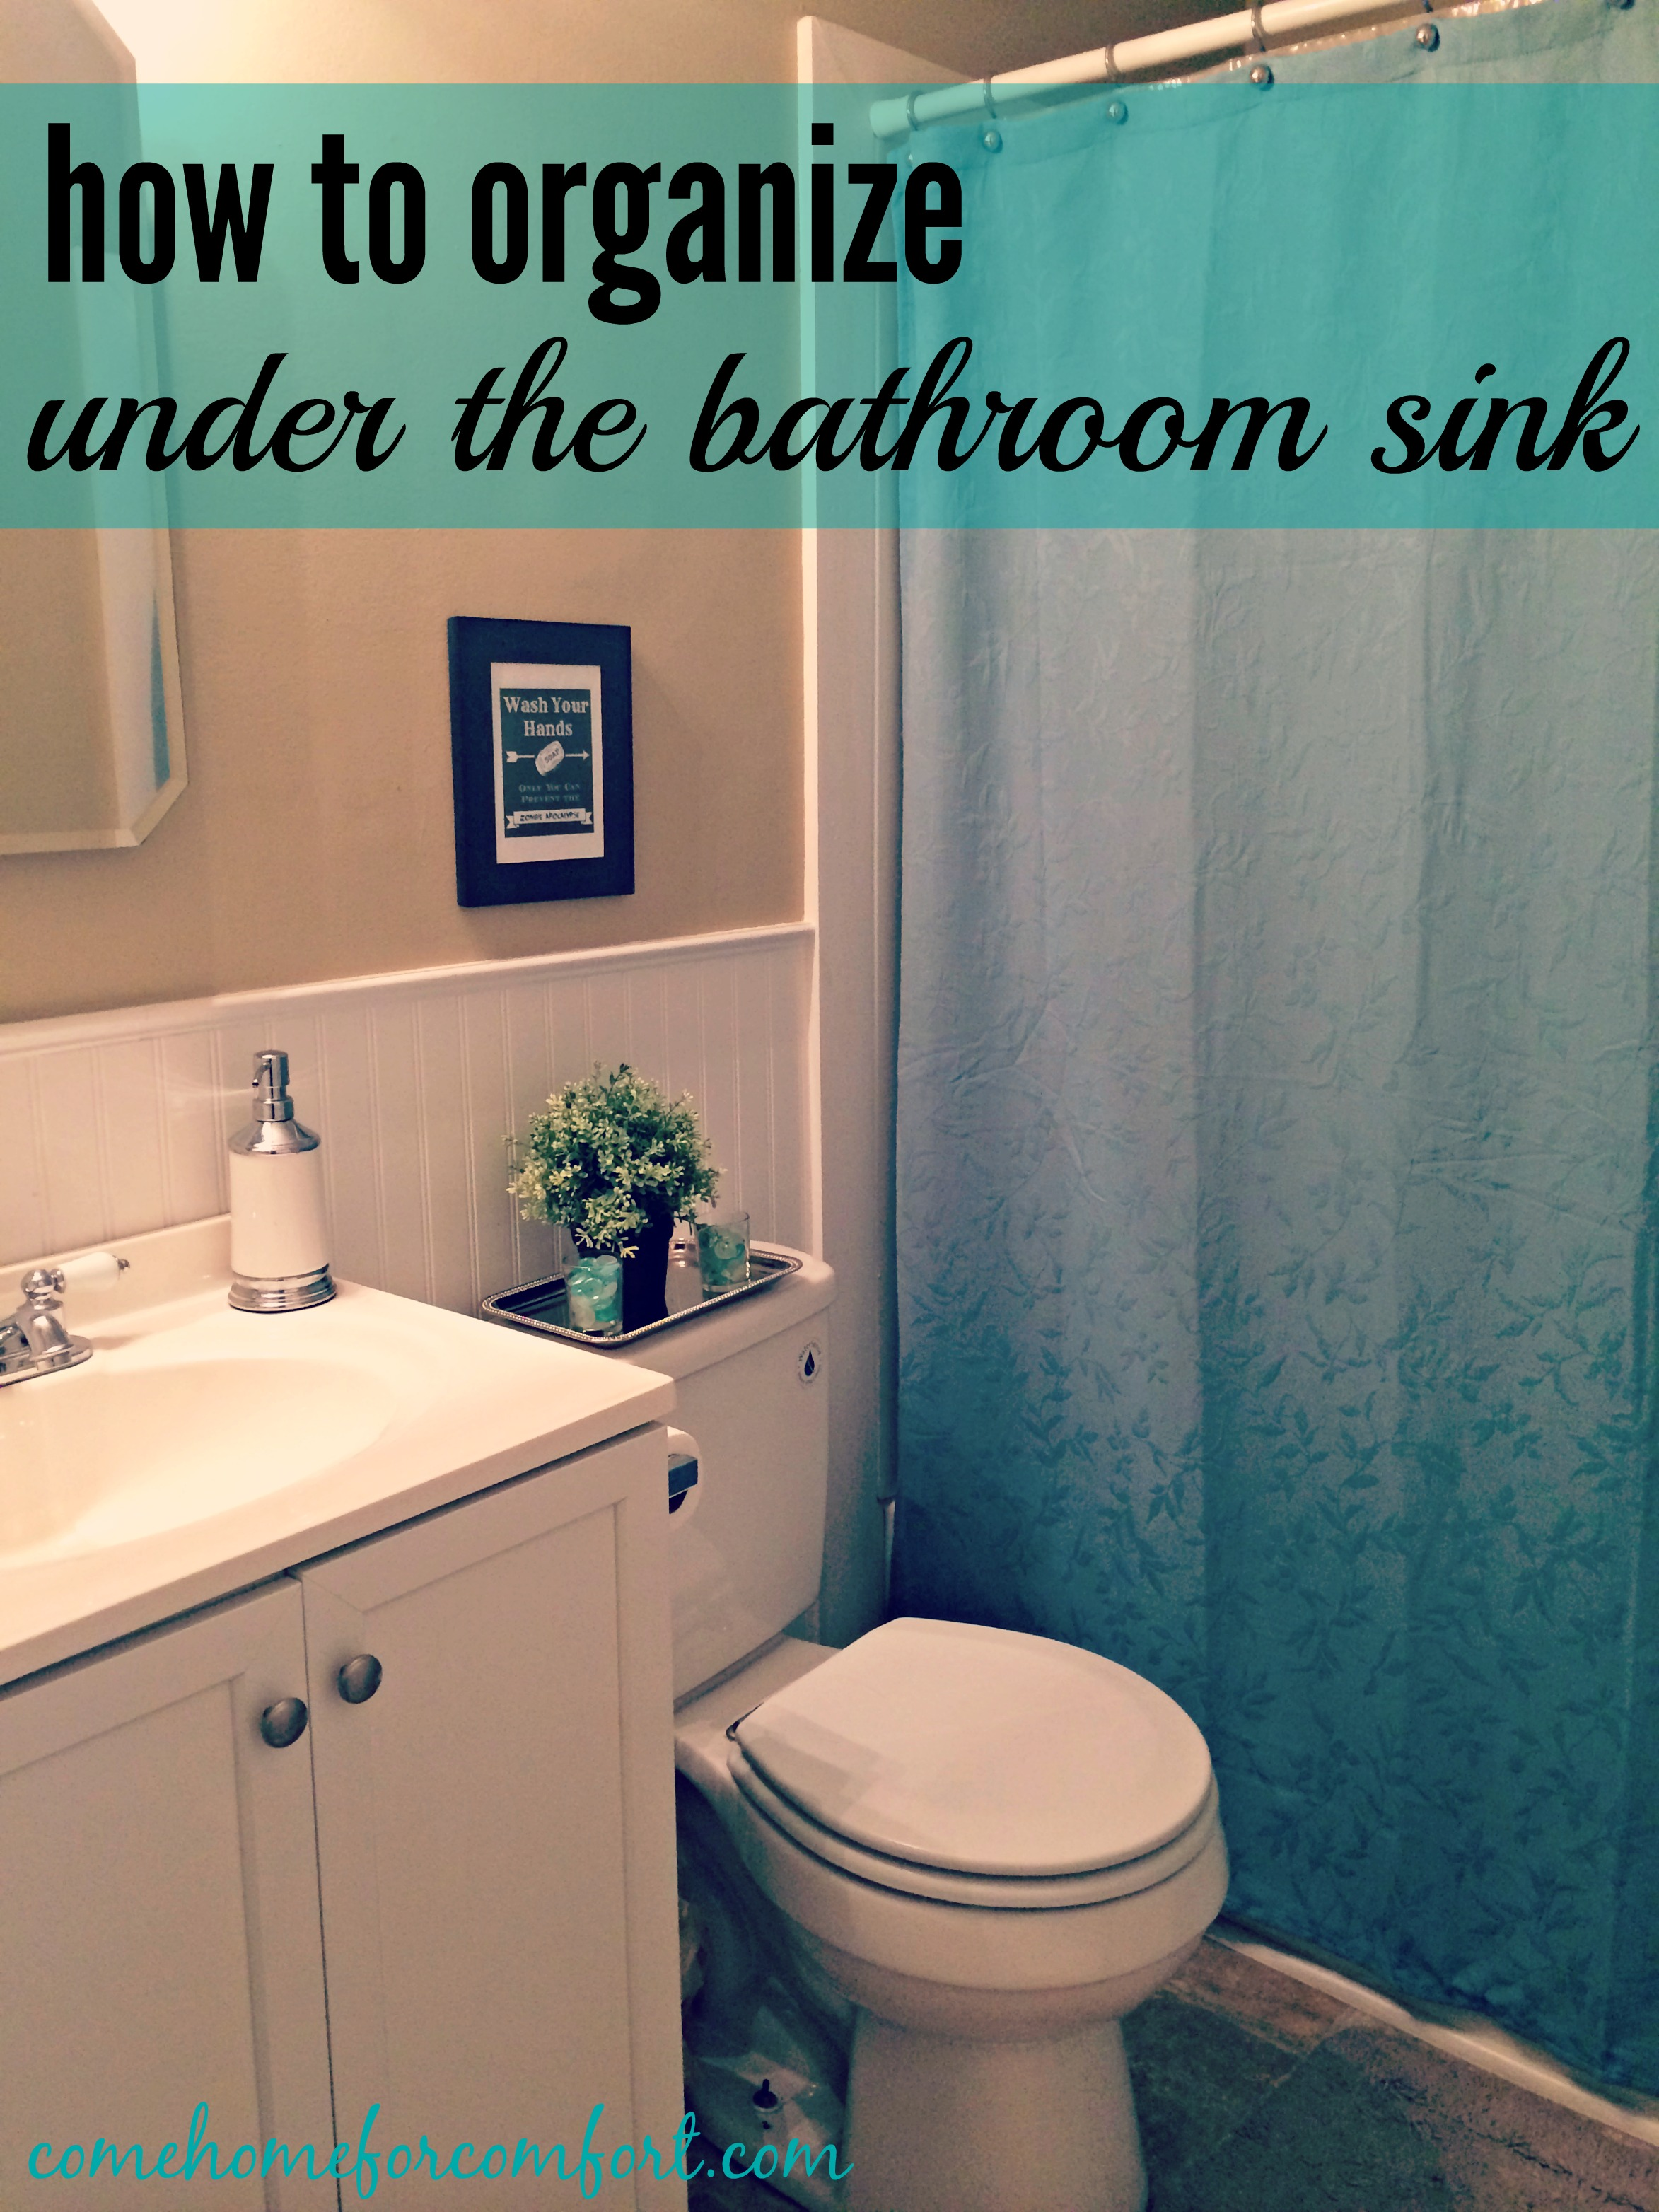 How To Organize Under The Bathroom Sink And A Peek At My: how to organize bathroom